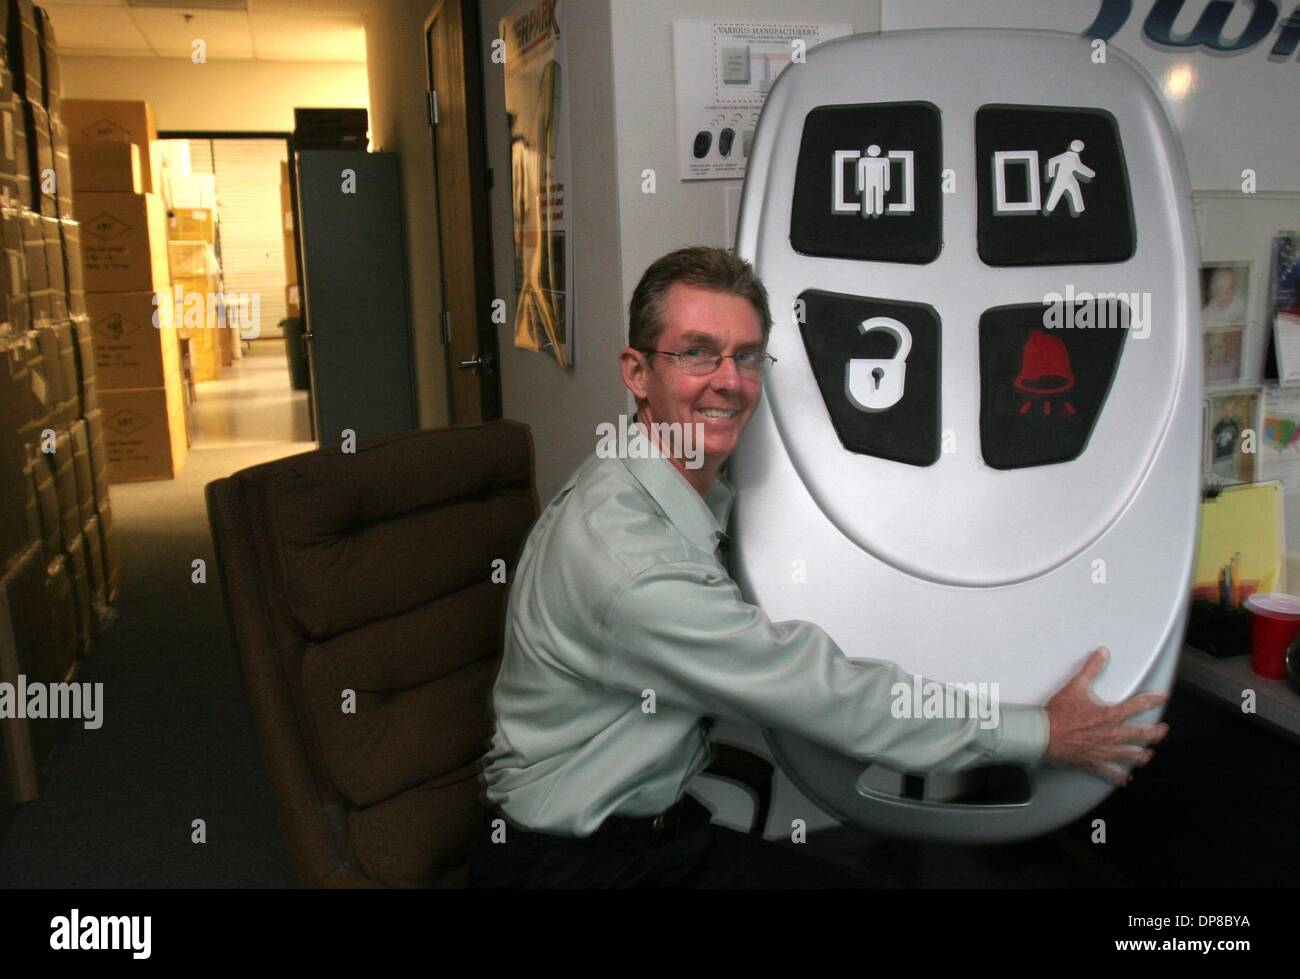 (Published 2/21/2005, E-1) Bob Burns, president of Advanced Bridging Technologies hugs a key fob that is a giant prototype for an instrument that ABT makes, an instrument that allows iPod owners to plug into a wireless system that can be heard over their stereo system.  UT/John Gastaldo - Stock Image